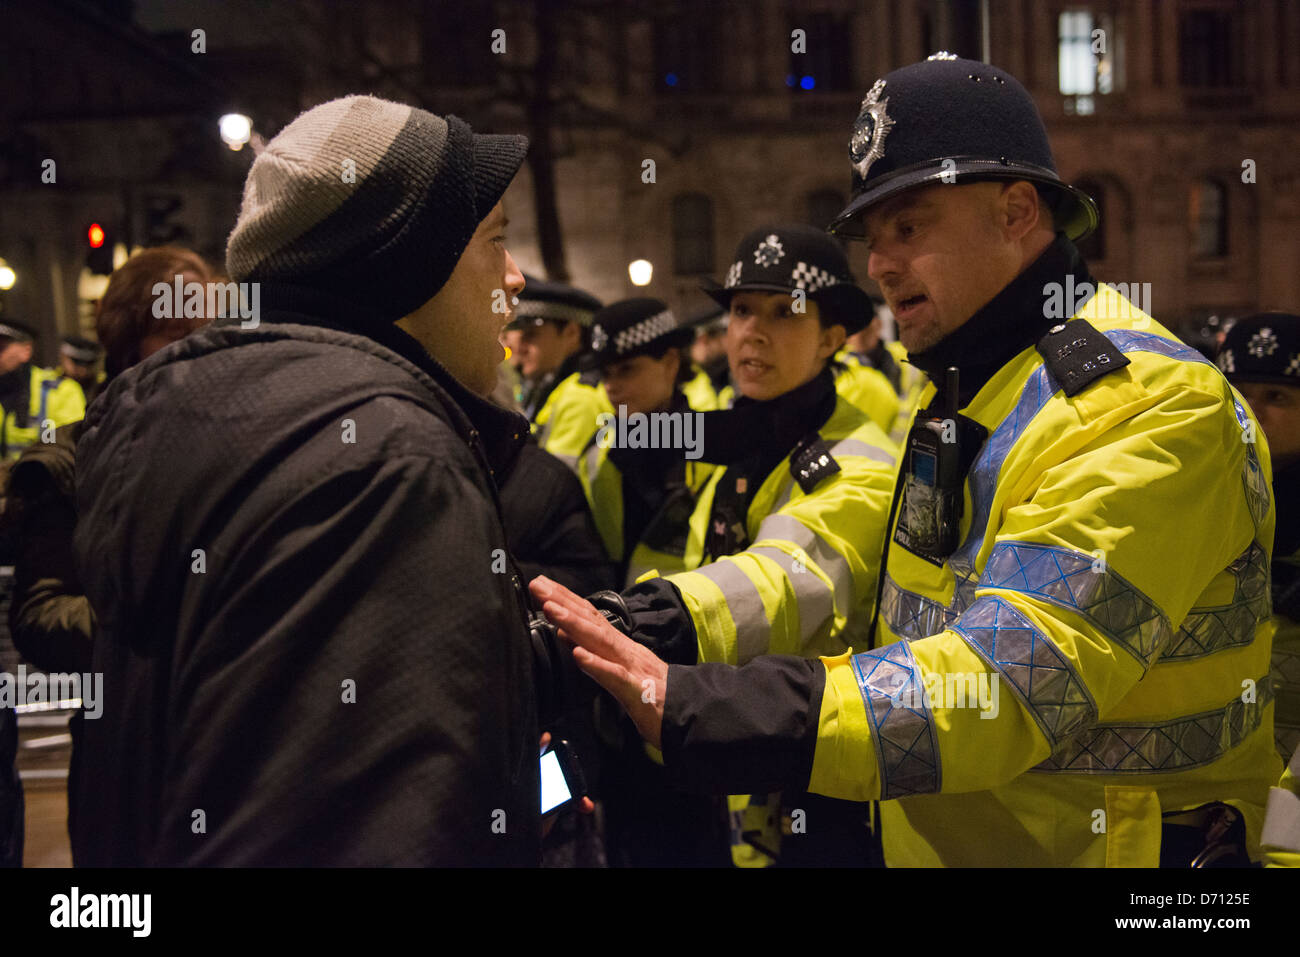 Metropolitan police try to calm down a protester who feels he is being detained against his will - Stock Image